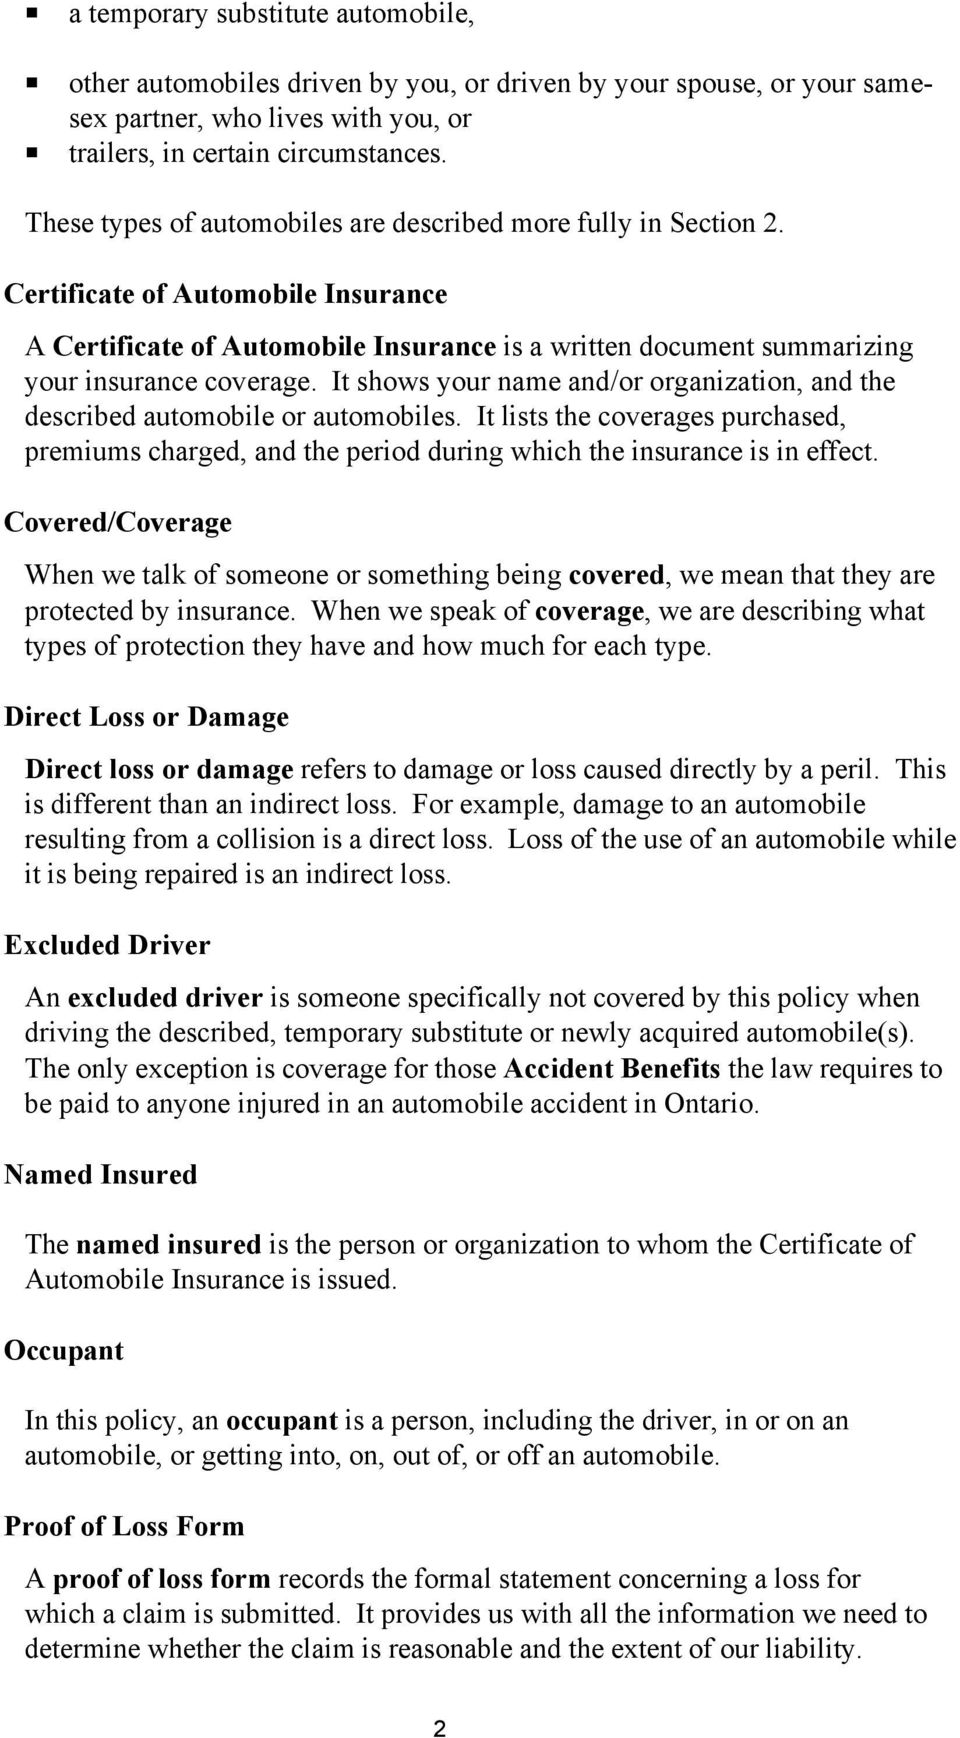 It shows your name and/or organization, and the described automobile or automobiles. It lists the coverages purchased, premiums charged, and the period during which the insurance is in effect.